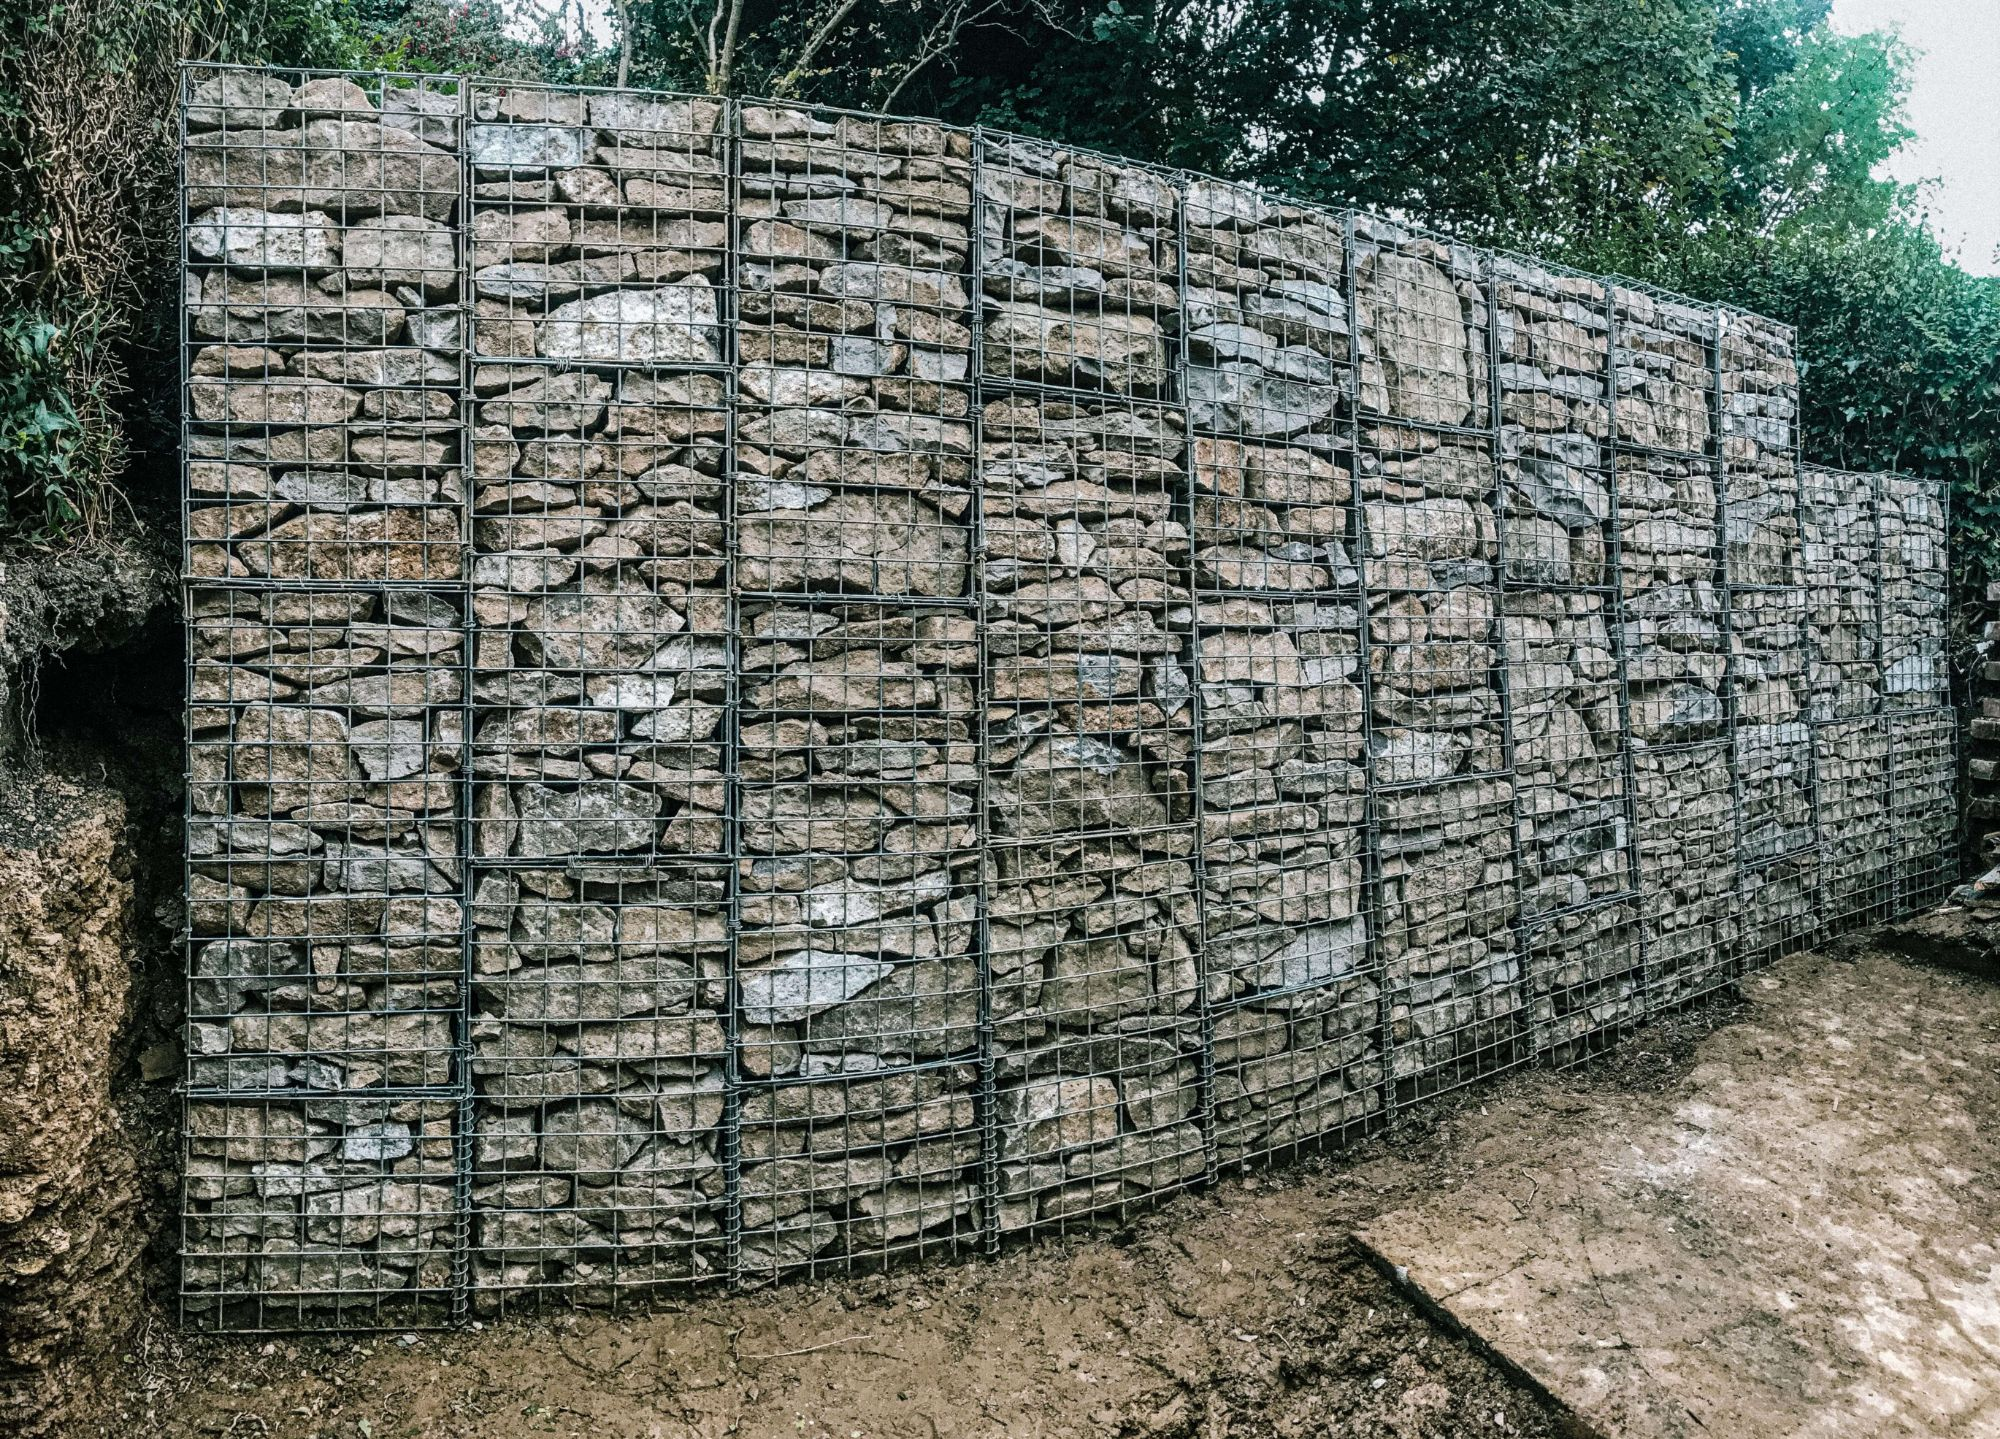 A photo of a gabion basket dry stone wall in Ecclesall in Sheffield